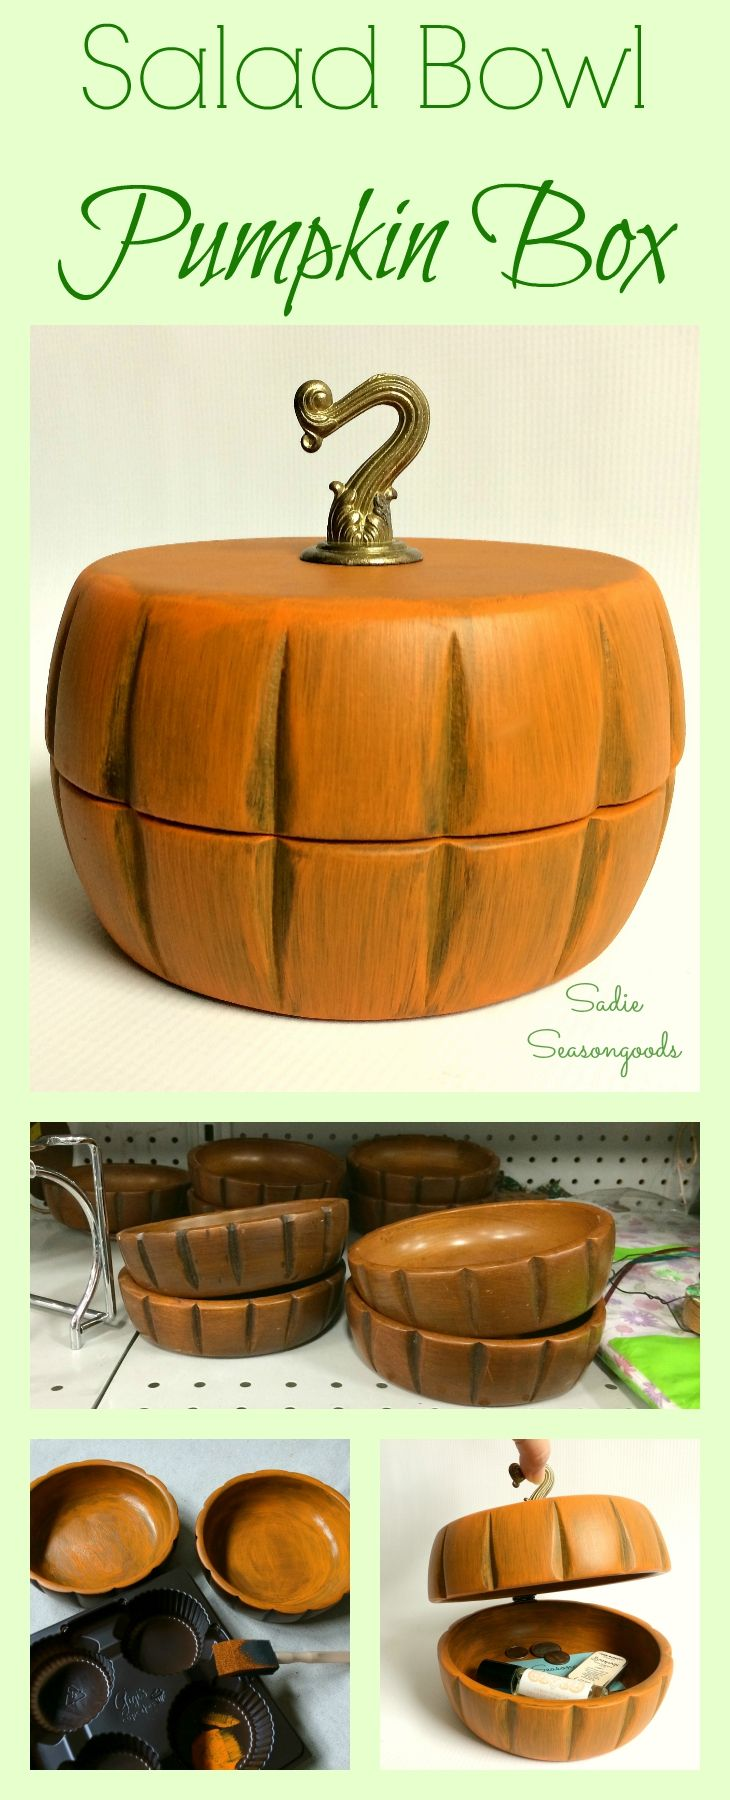 What do you get when you put two wooden salad bowls (from the thrift store!) together, paint them orange, connect them with a small hinge, and add a vintage swag hook on top? The cutest autumn pumpkin trinket box EVER! So simple, so inexpensive, and downright adorable. Another fun Fall upcycling project from #SadieSeasongoods !